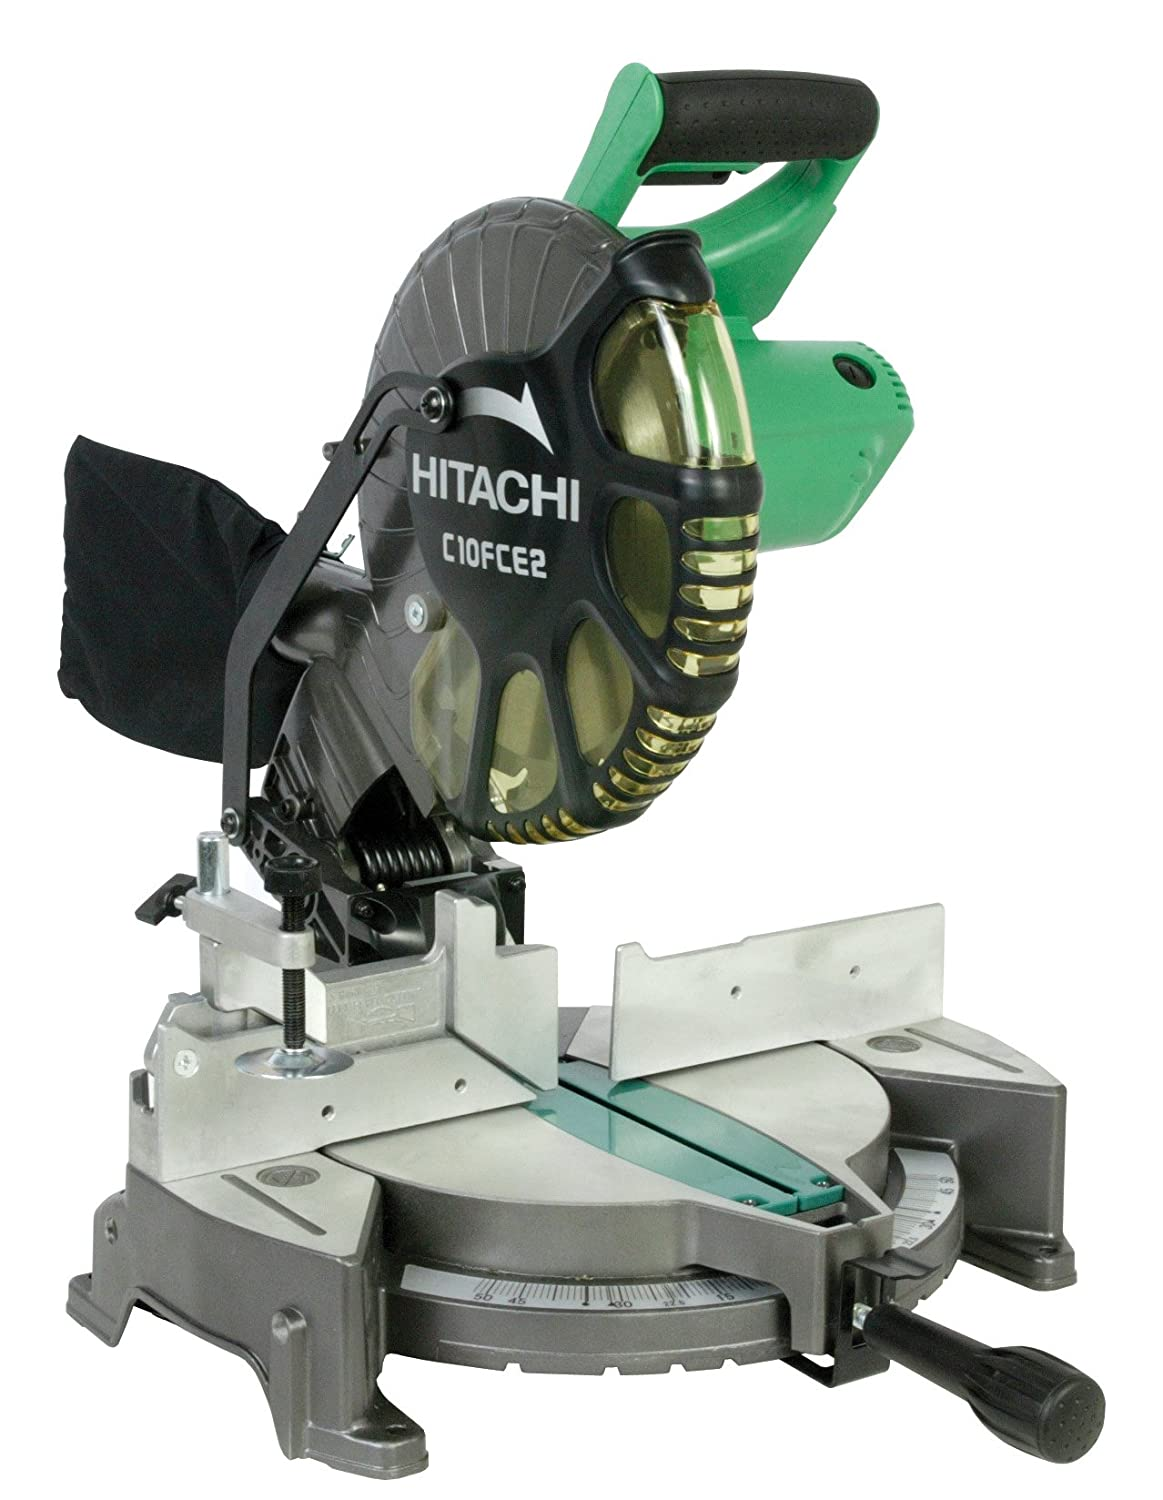 The Best Compound Miter Saw 4